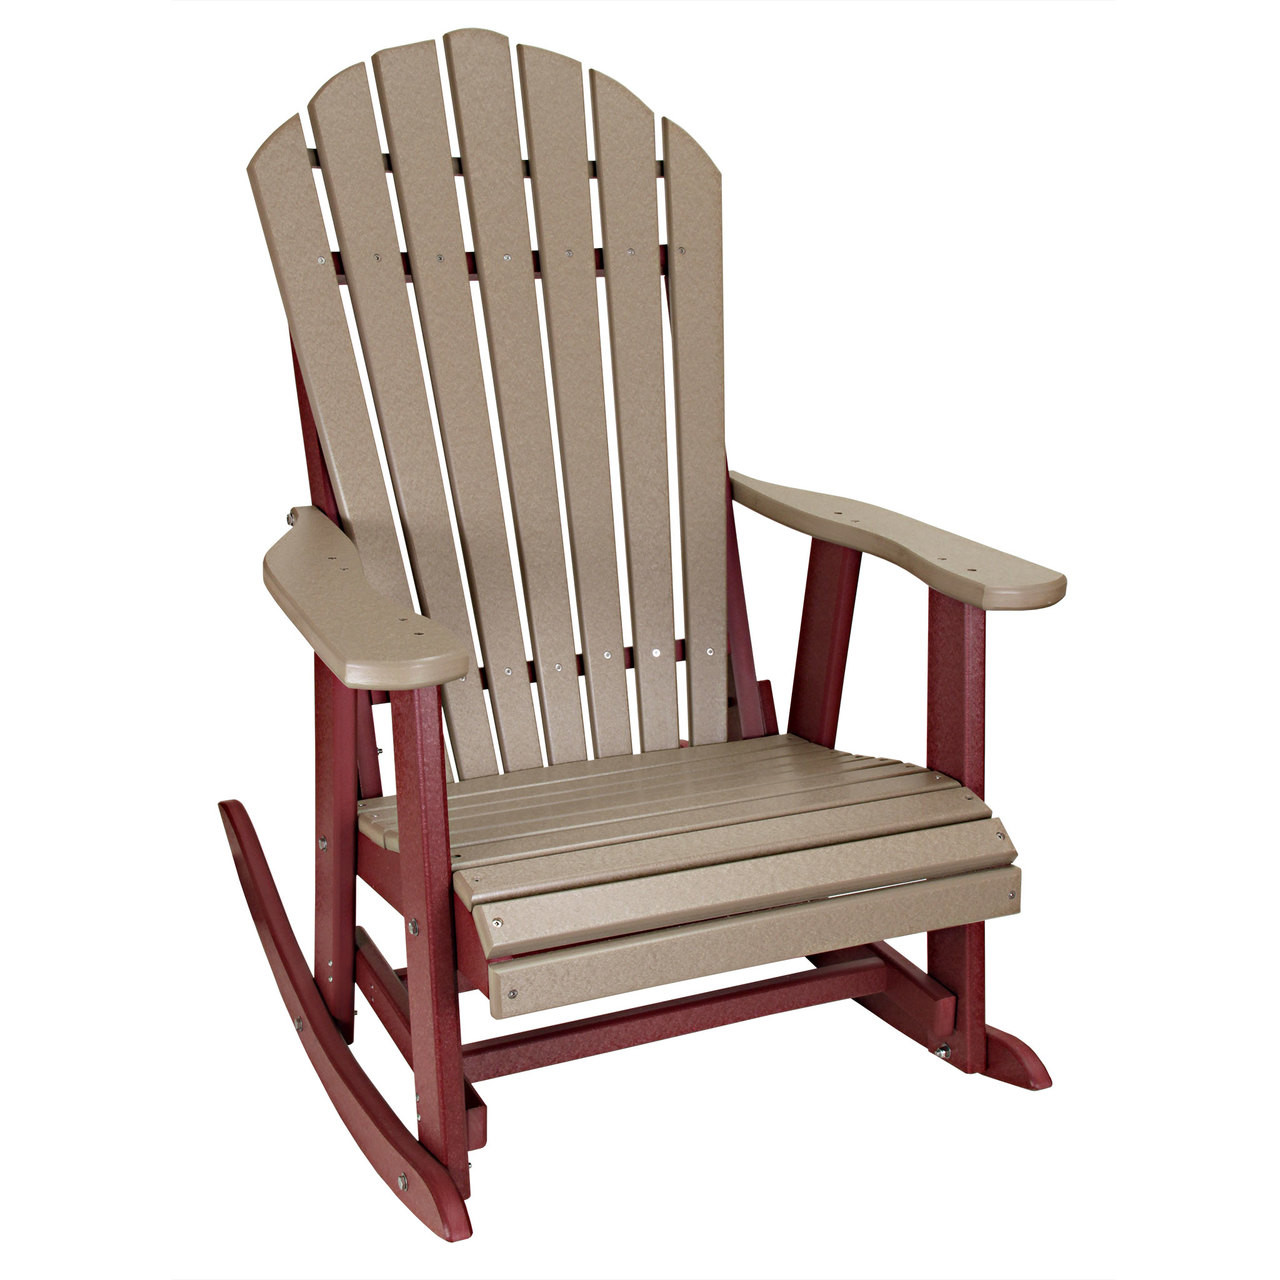 Cheap Rocking Chairs Outer Banks Deluxe Poly Lumber Adirondack Rocking Chair